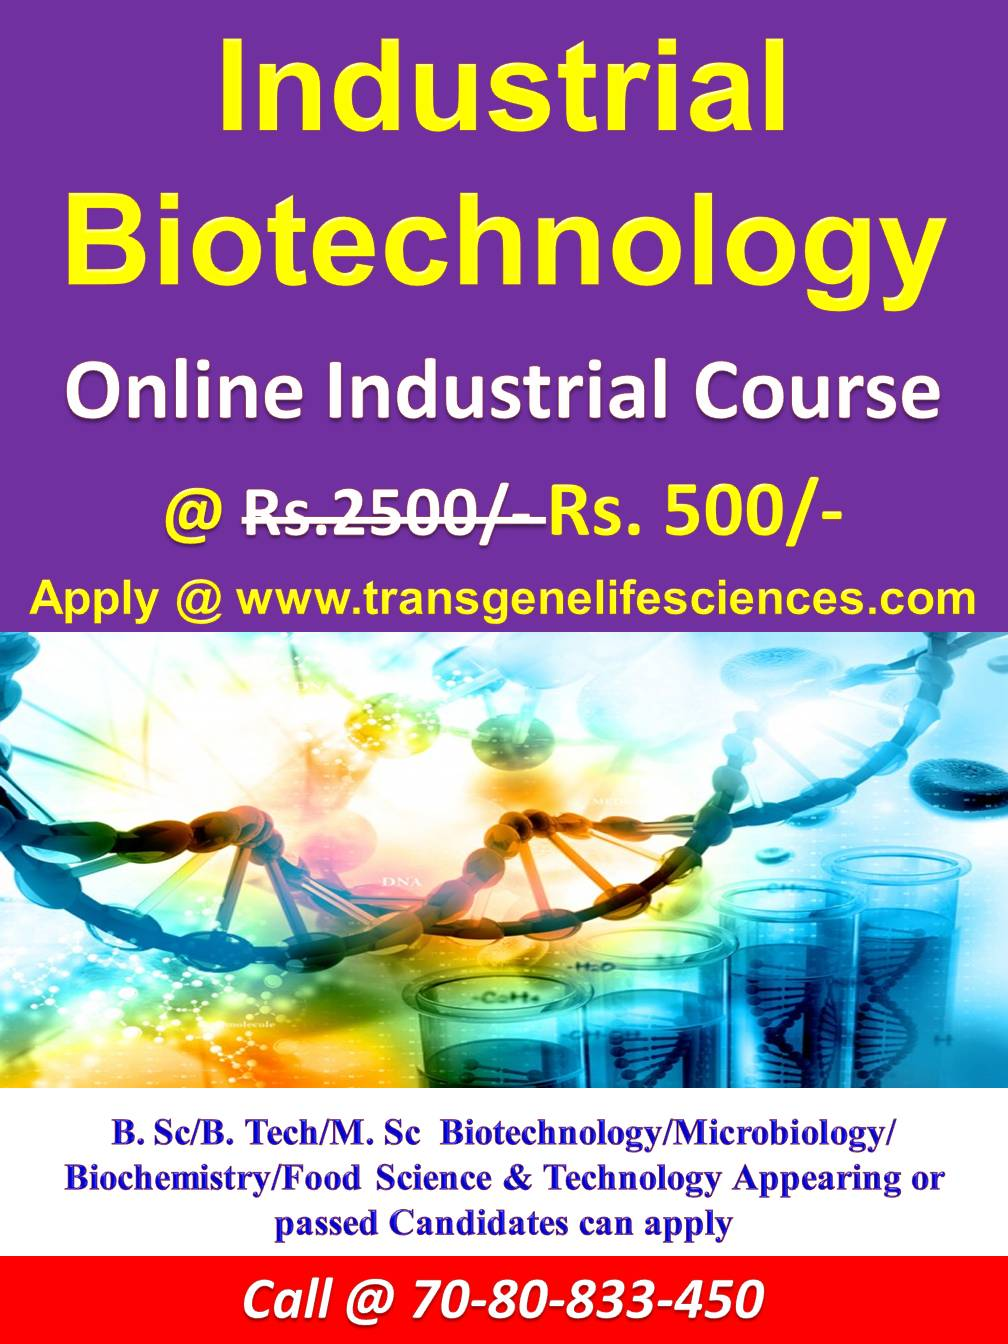 Industrial Biotechnology Online Certificate Course Rs500